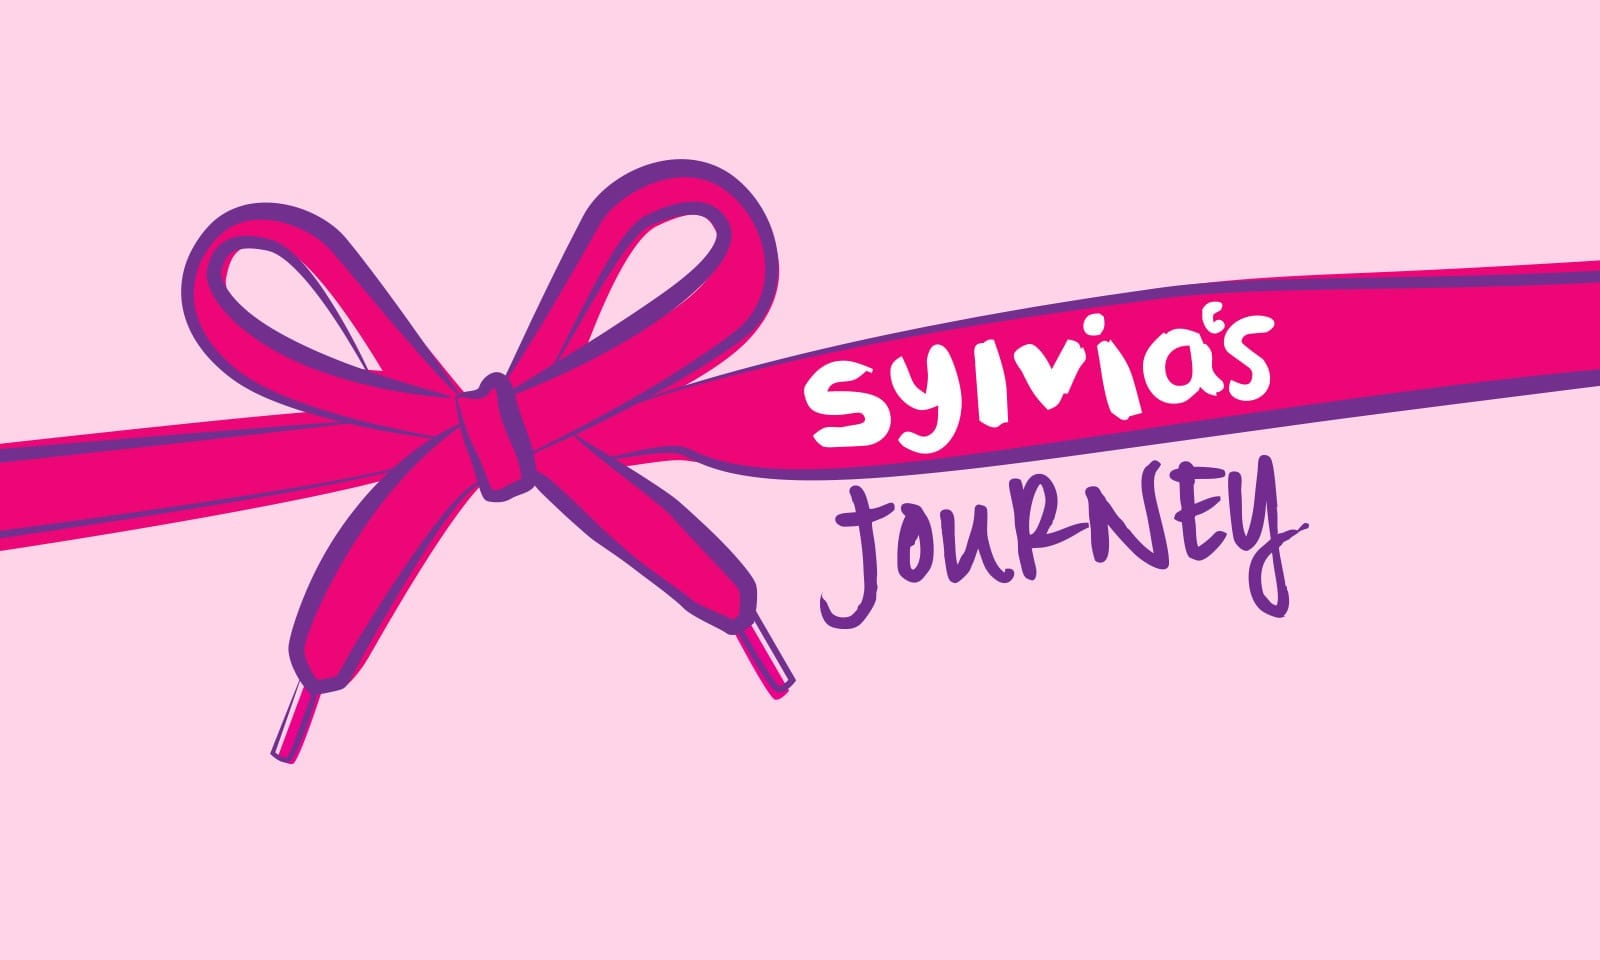 Best corporate identity sydney, Sylvia's Journey masterbrand and iconic pink shoelaces brand designfor the Australian based charity.